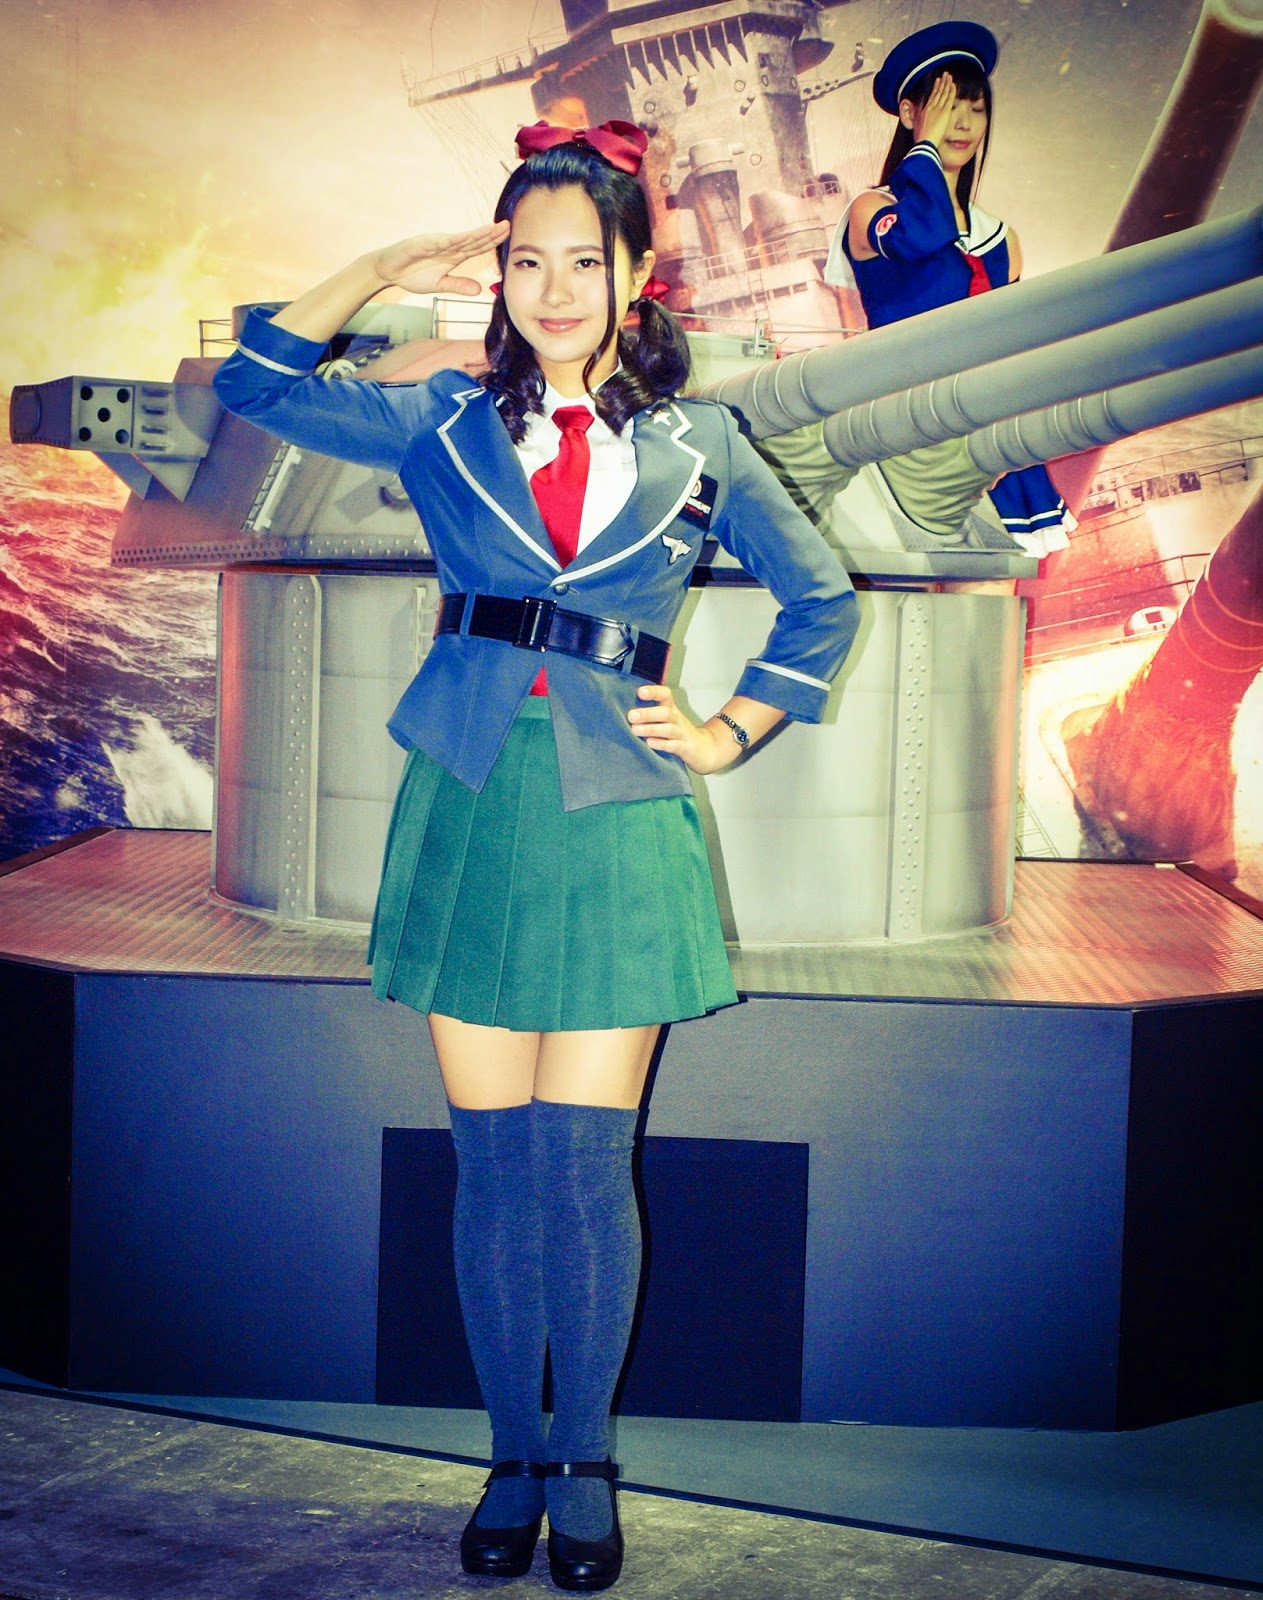 World of Tanks booth girl